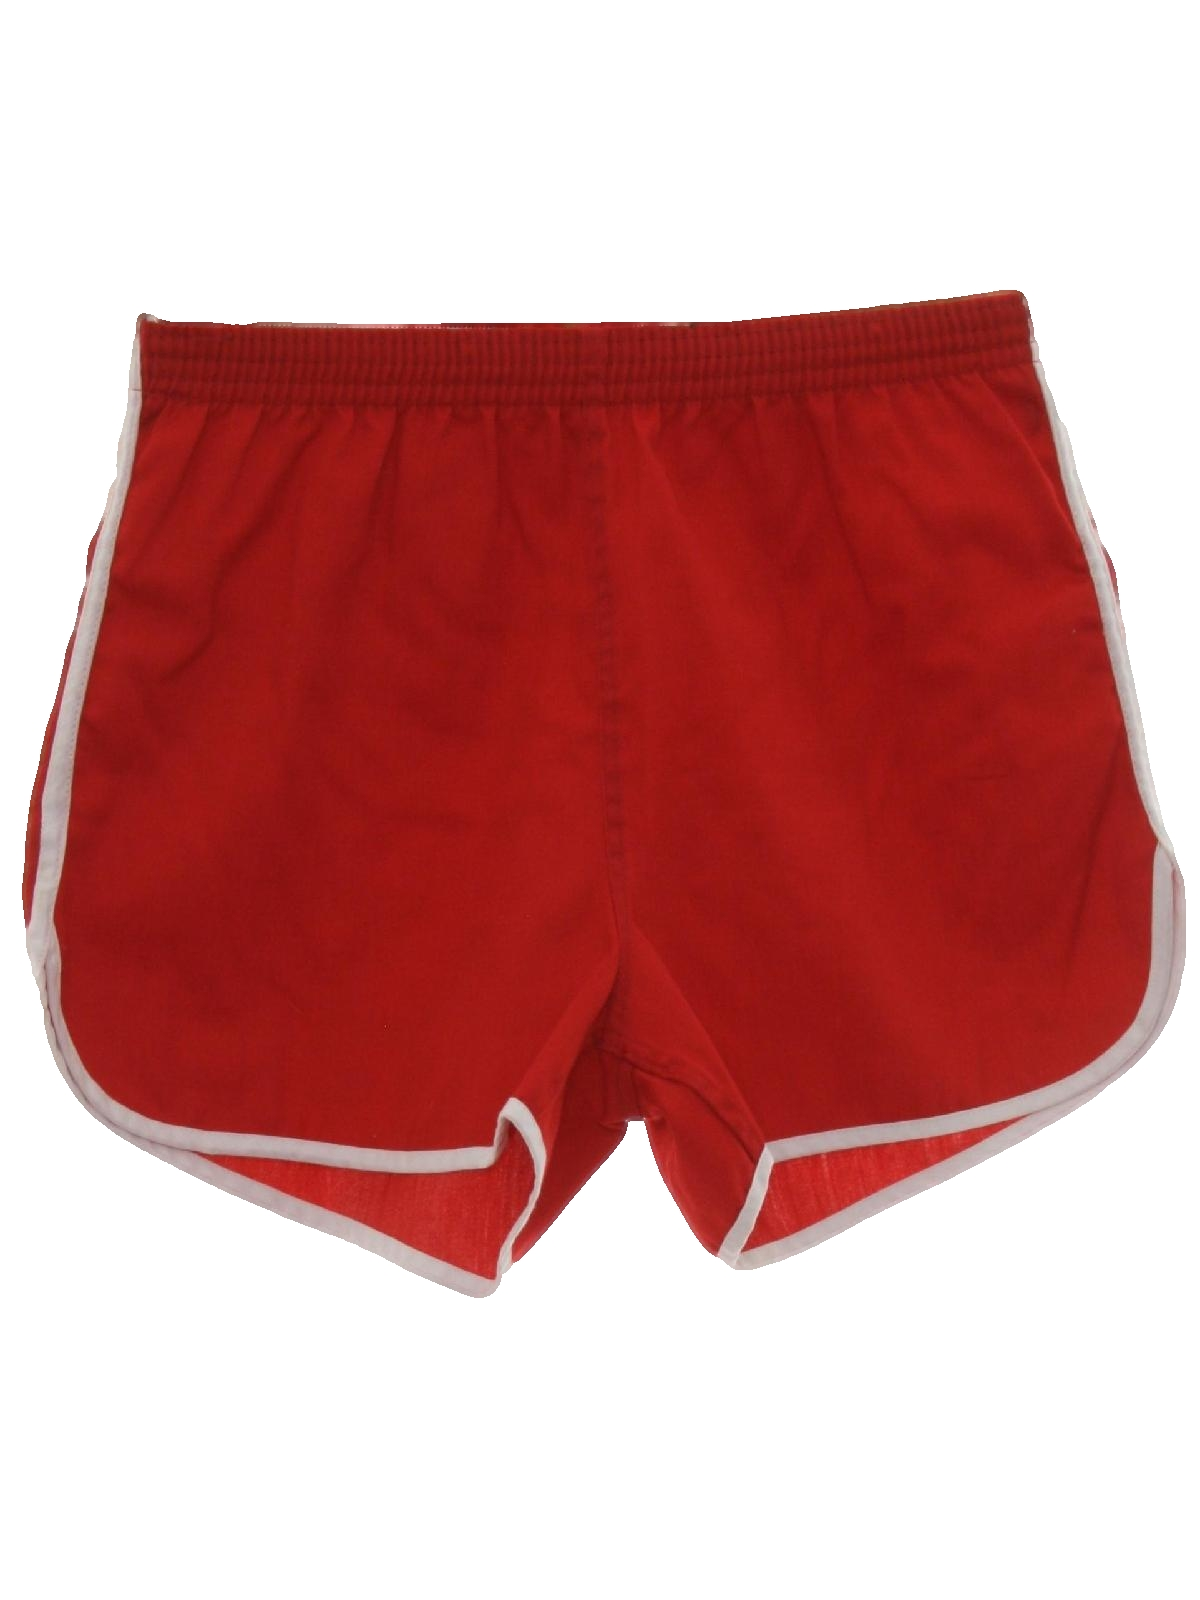 80s Retro Shorts: 80s -Missing Label- Mens red background ...